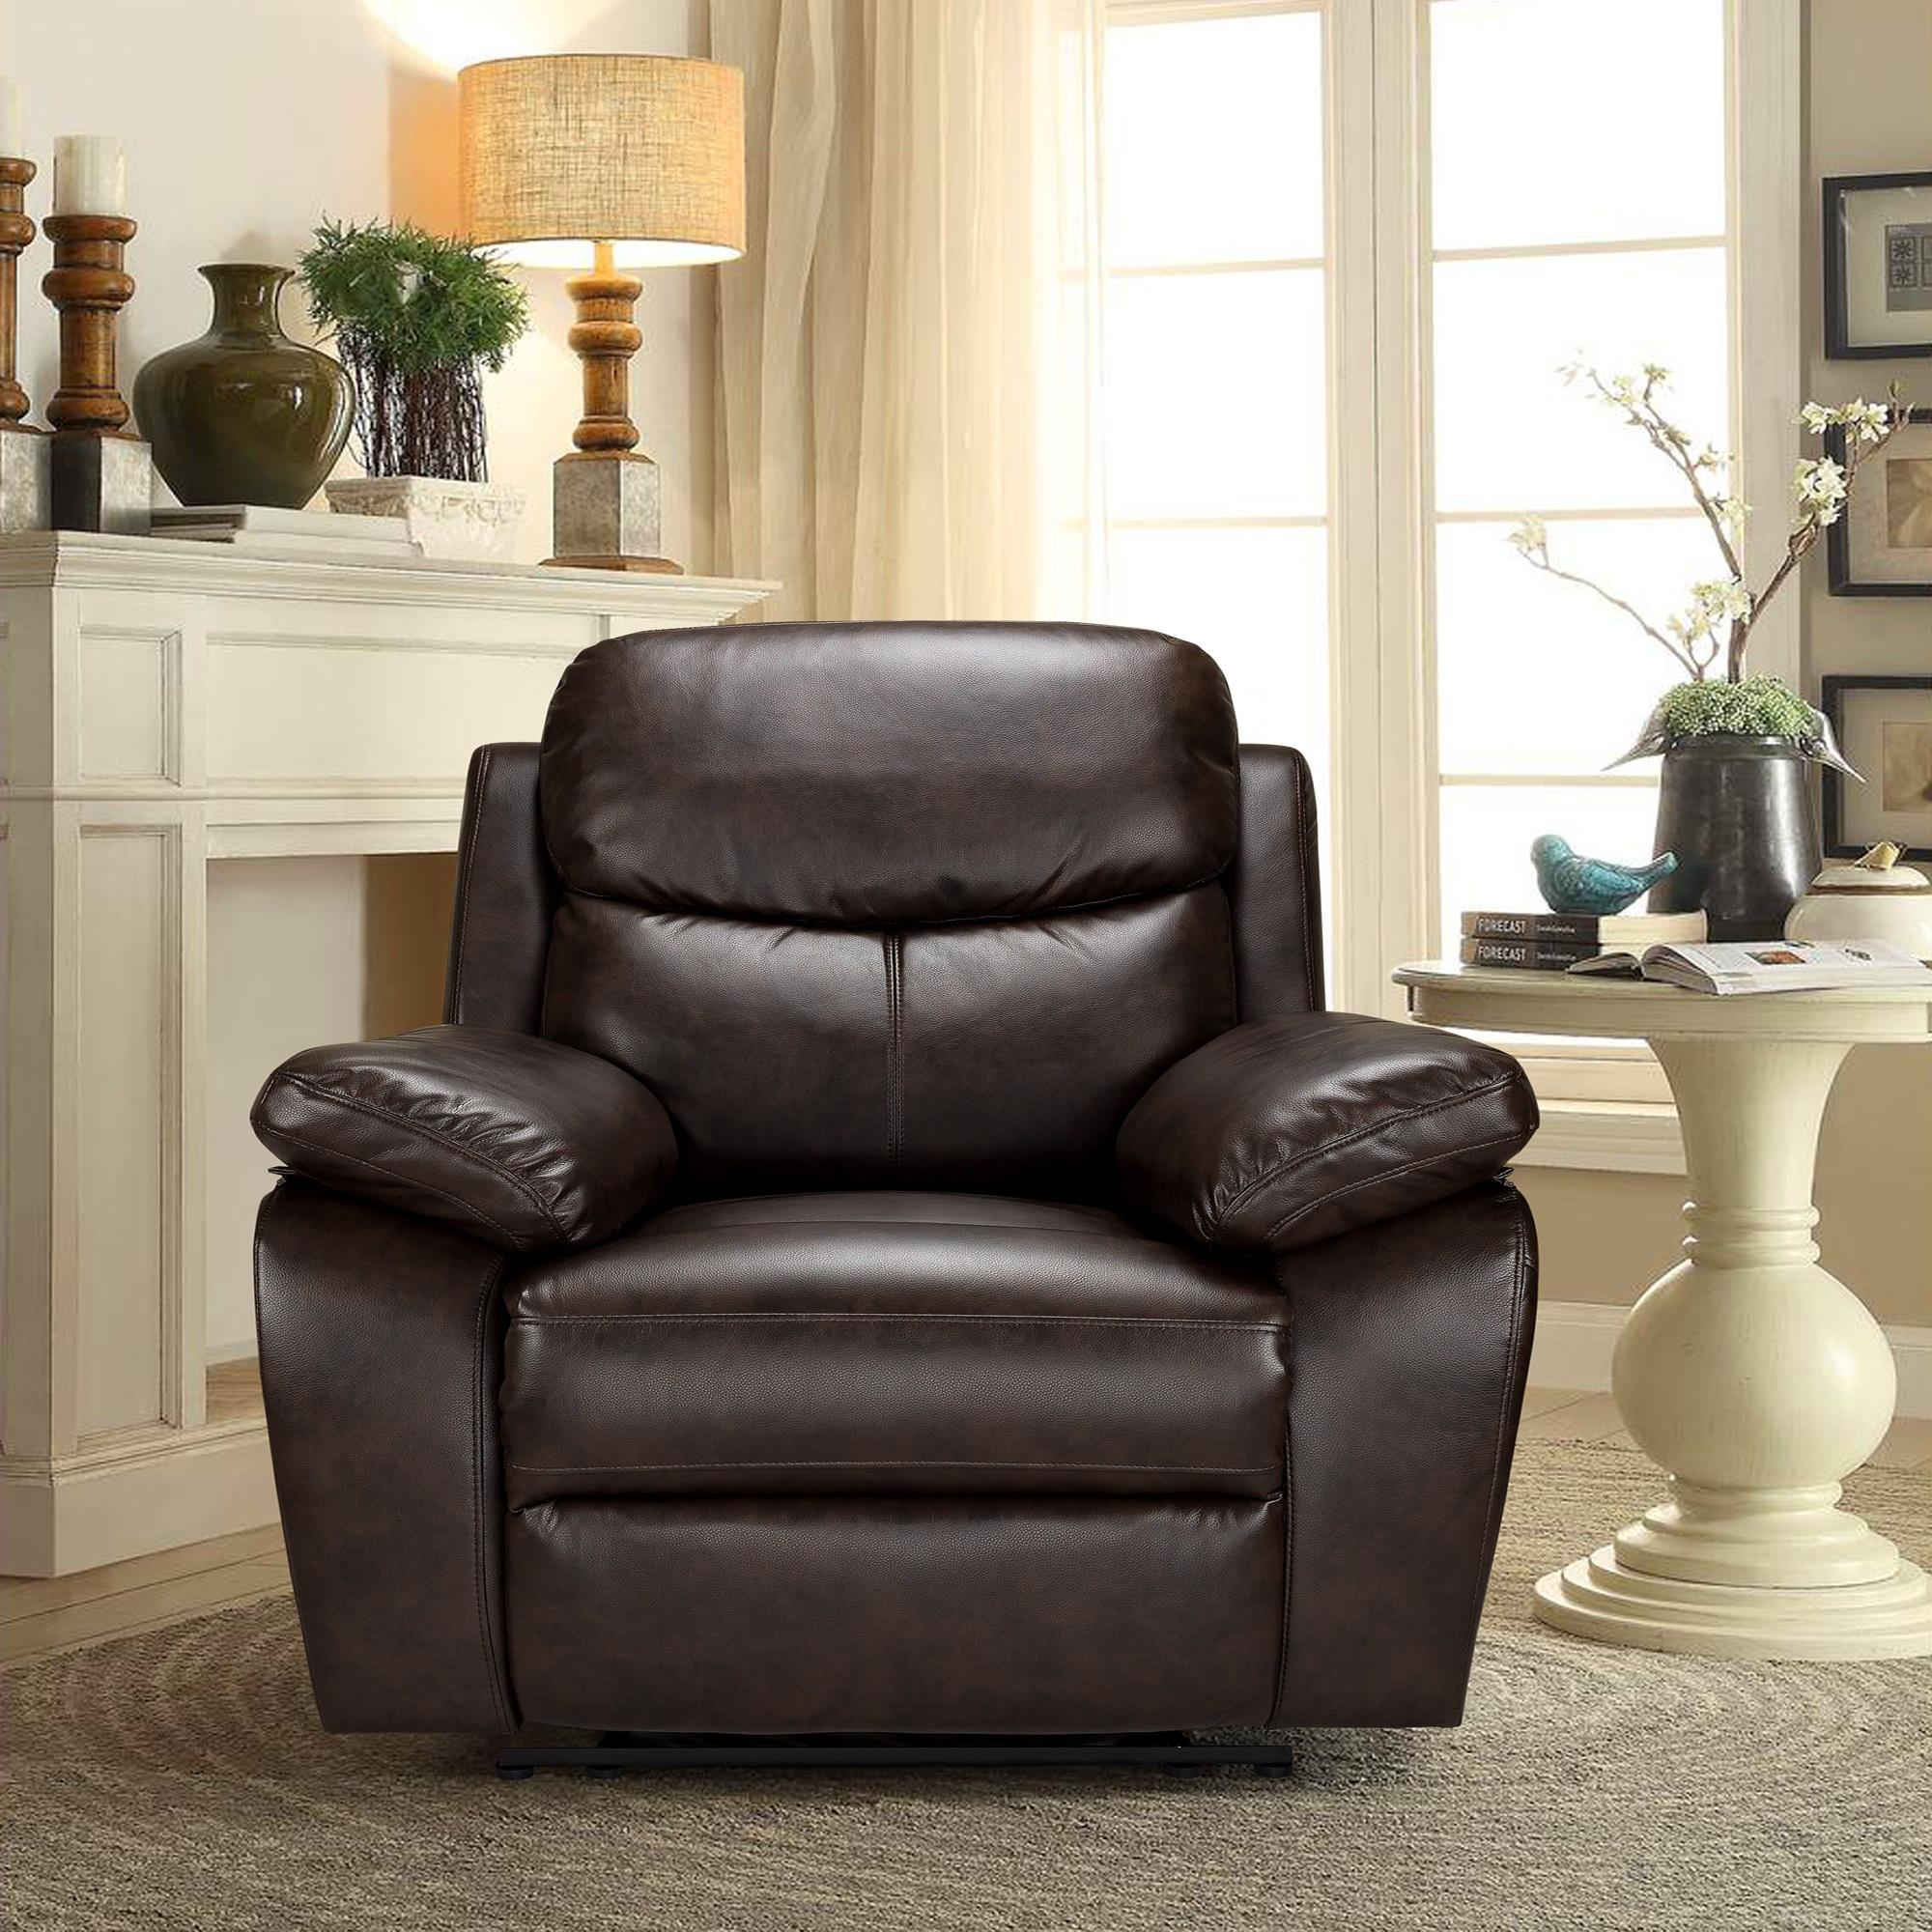 imported brown single recliner sofa pu leather